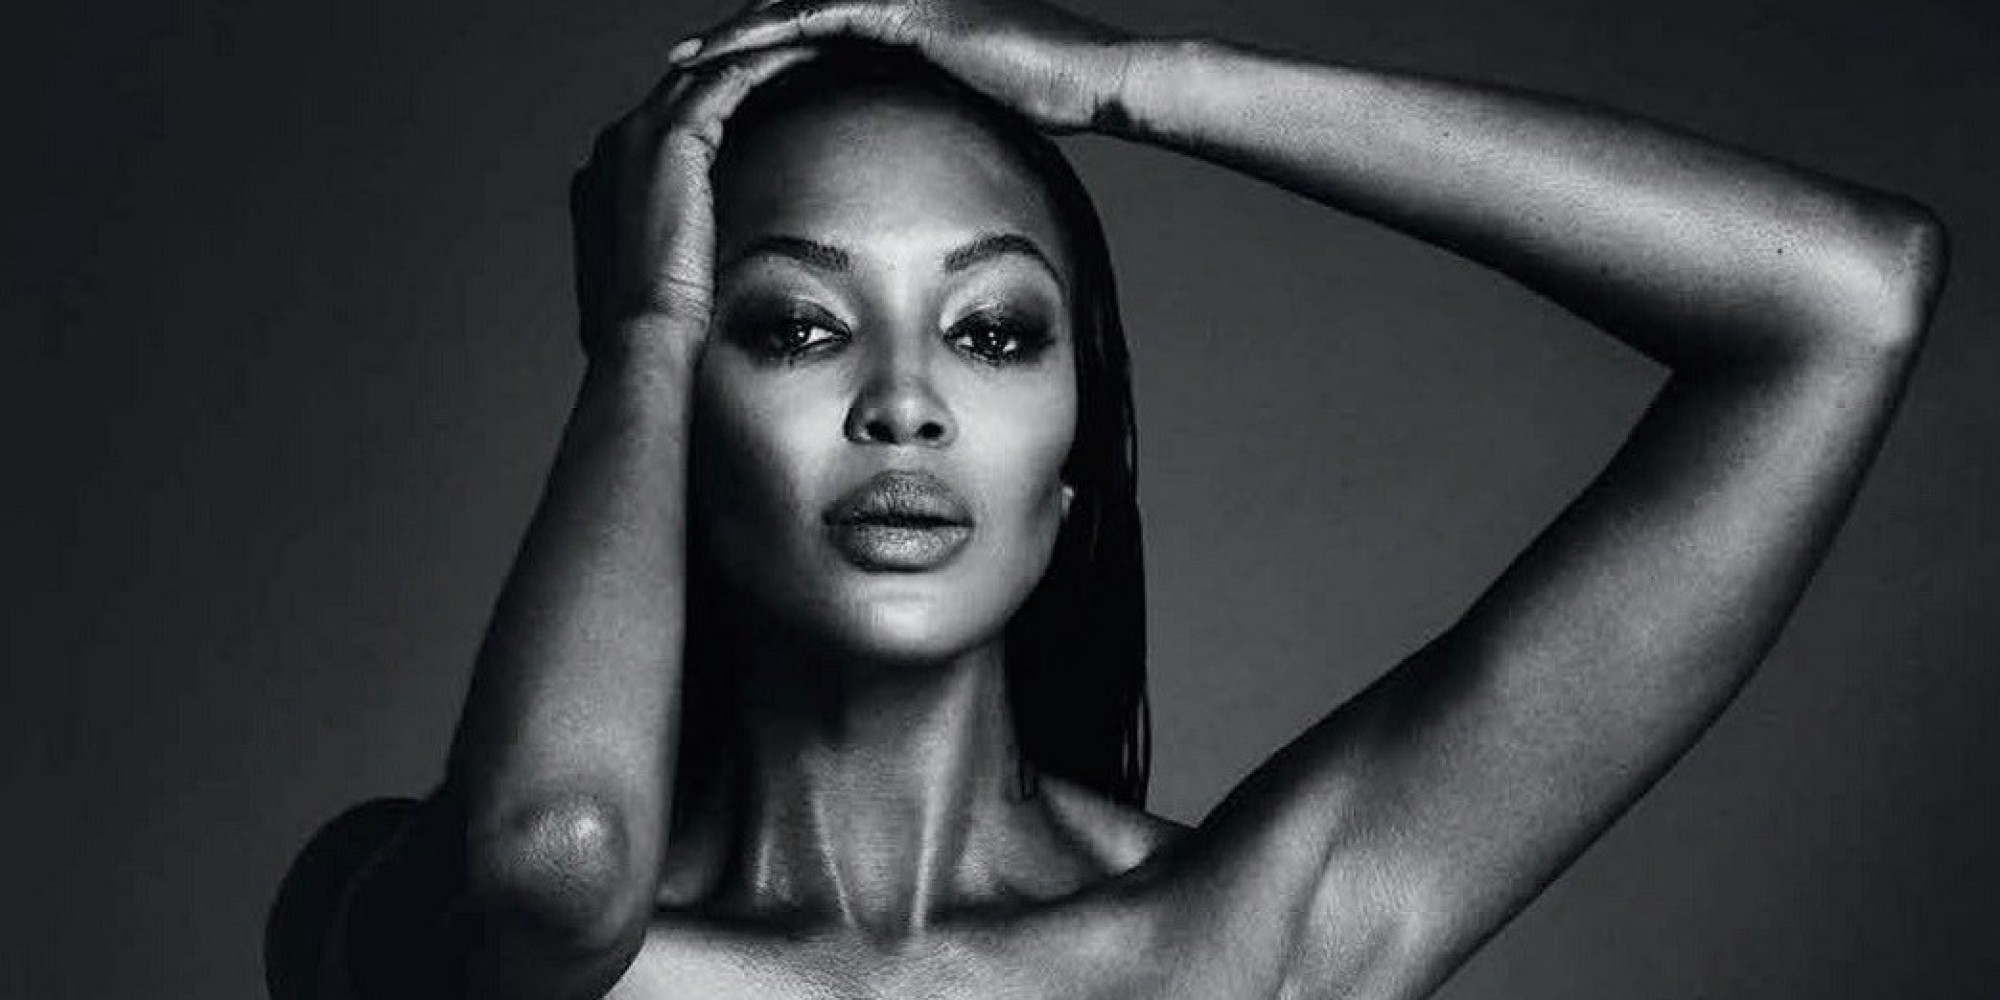 Naomi campbell nude pics picture 51